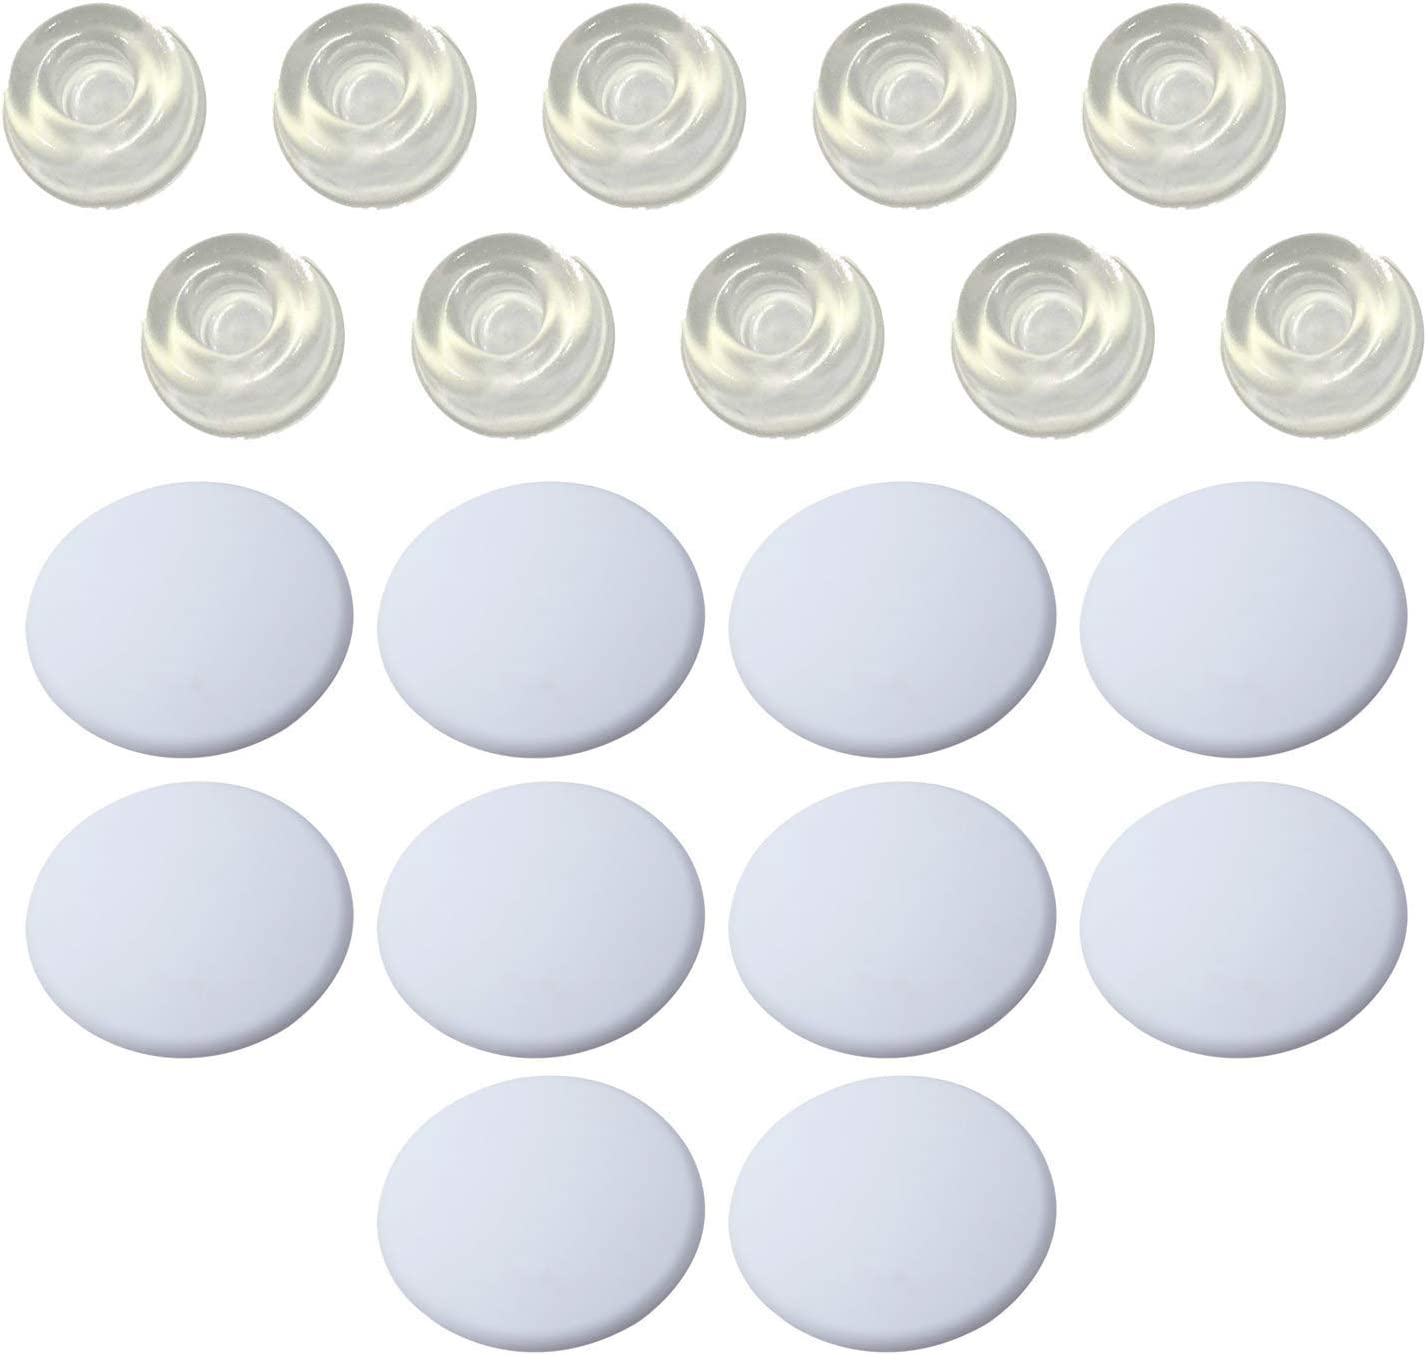 Max 69% OFF Strongest Ranking TOP17 Wall Door Stop Set- 10 Soft Silicone B of White Pieces